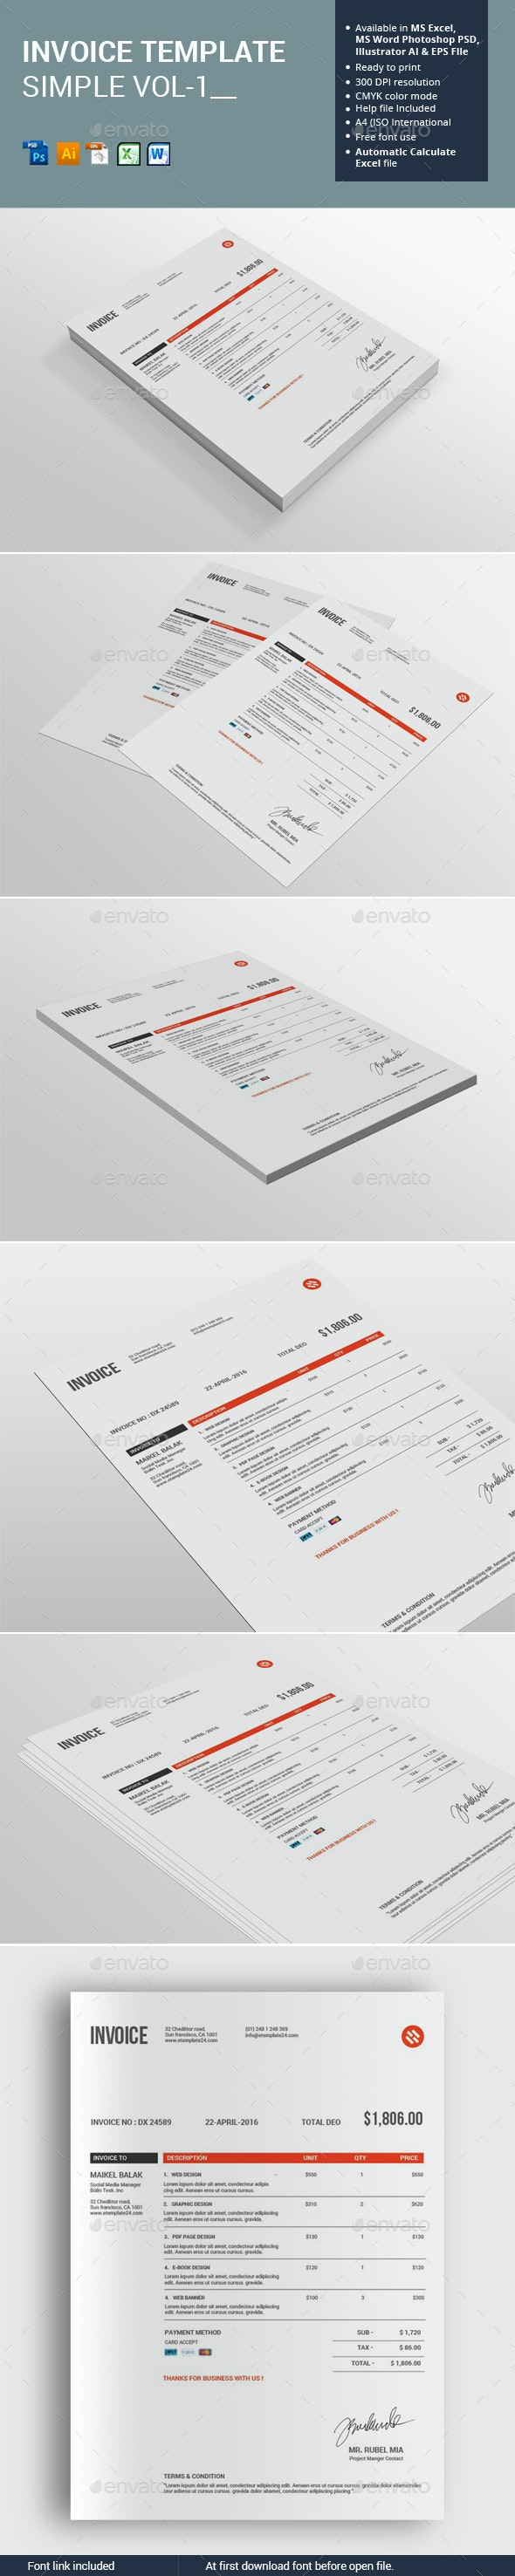 Invoice Template Simple Vol-1 - Proposals & Invoices Stationery